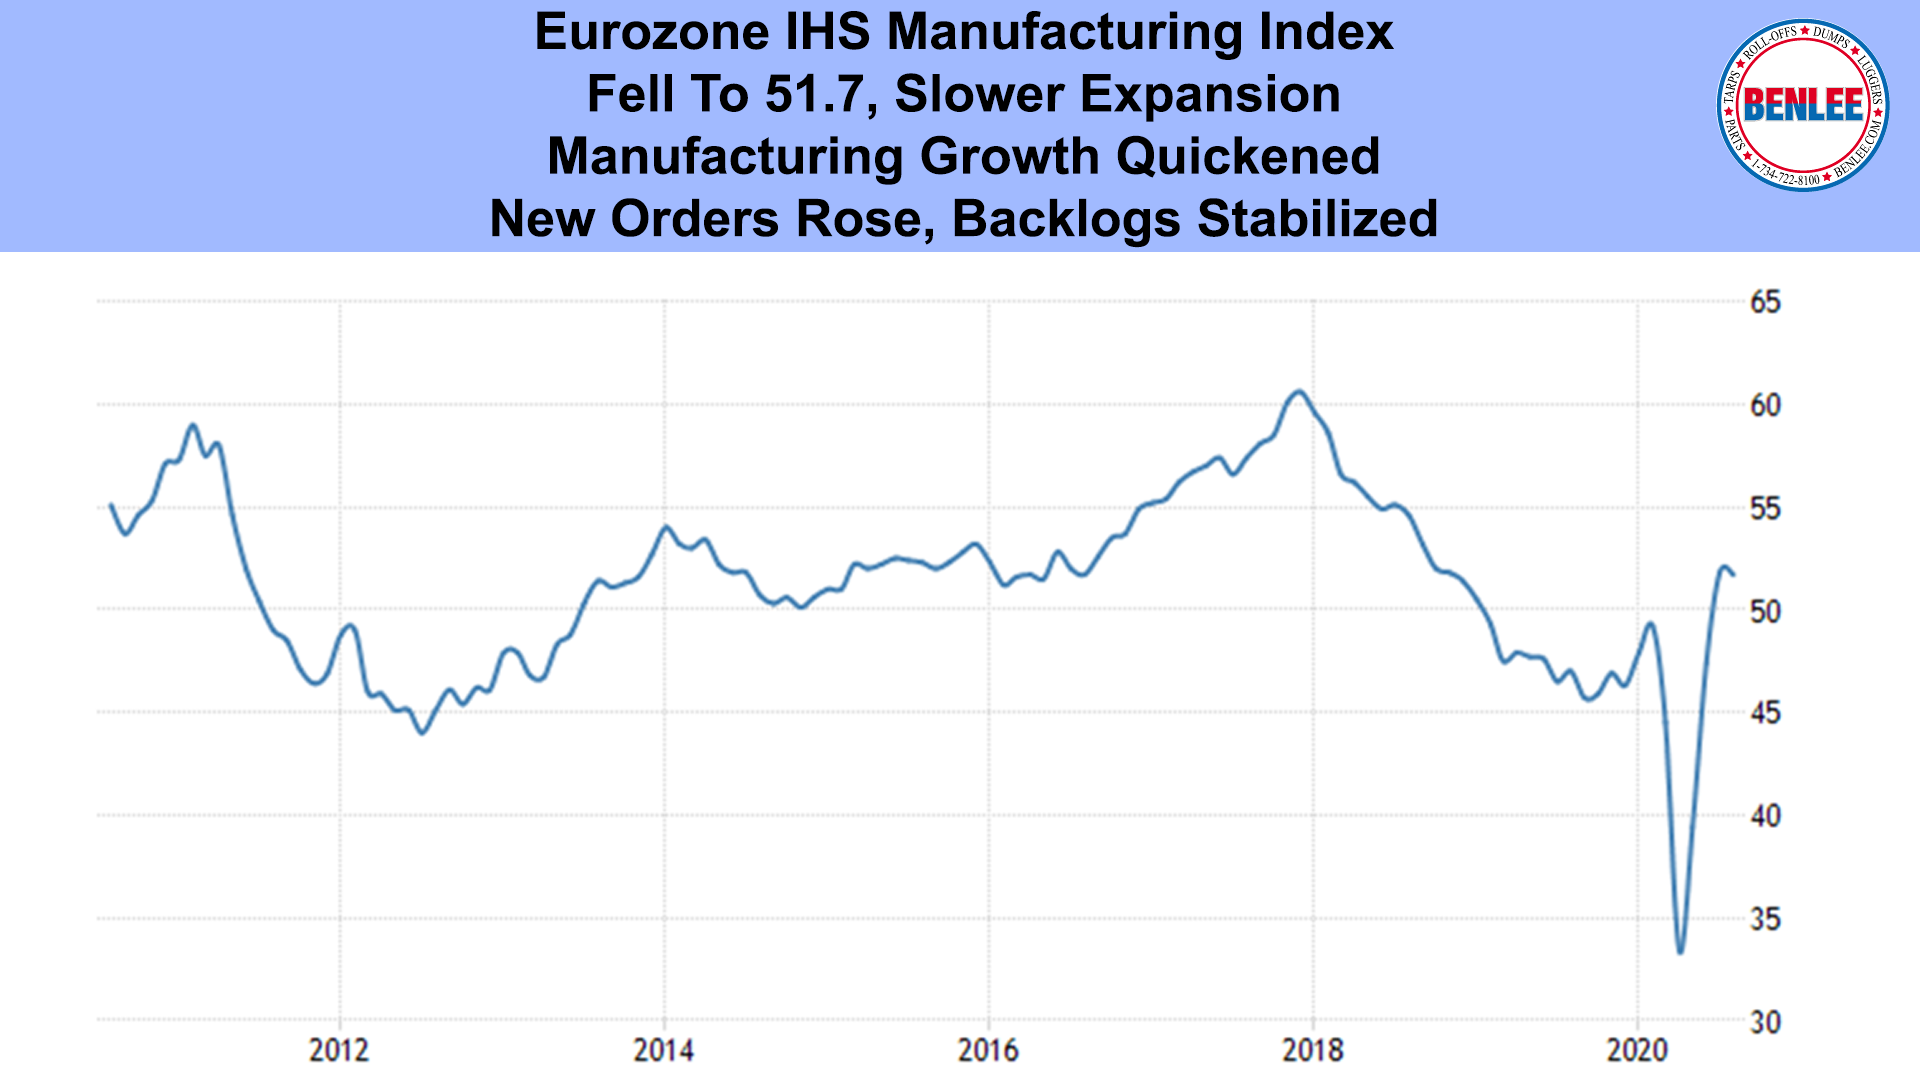 Eurozone IHS Manufacturing Index